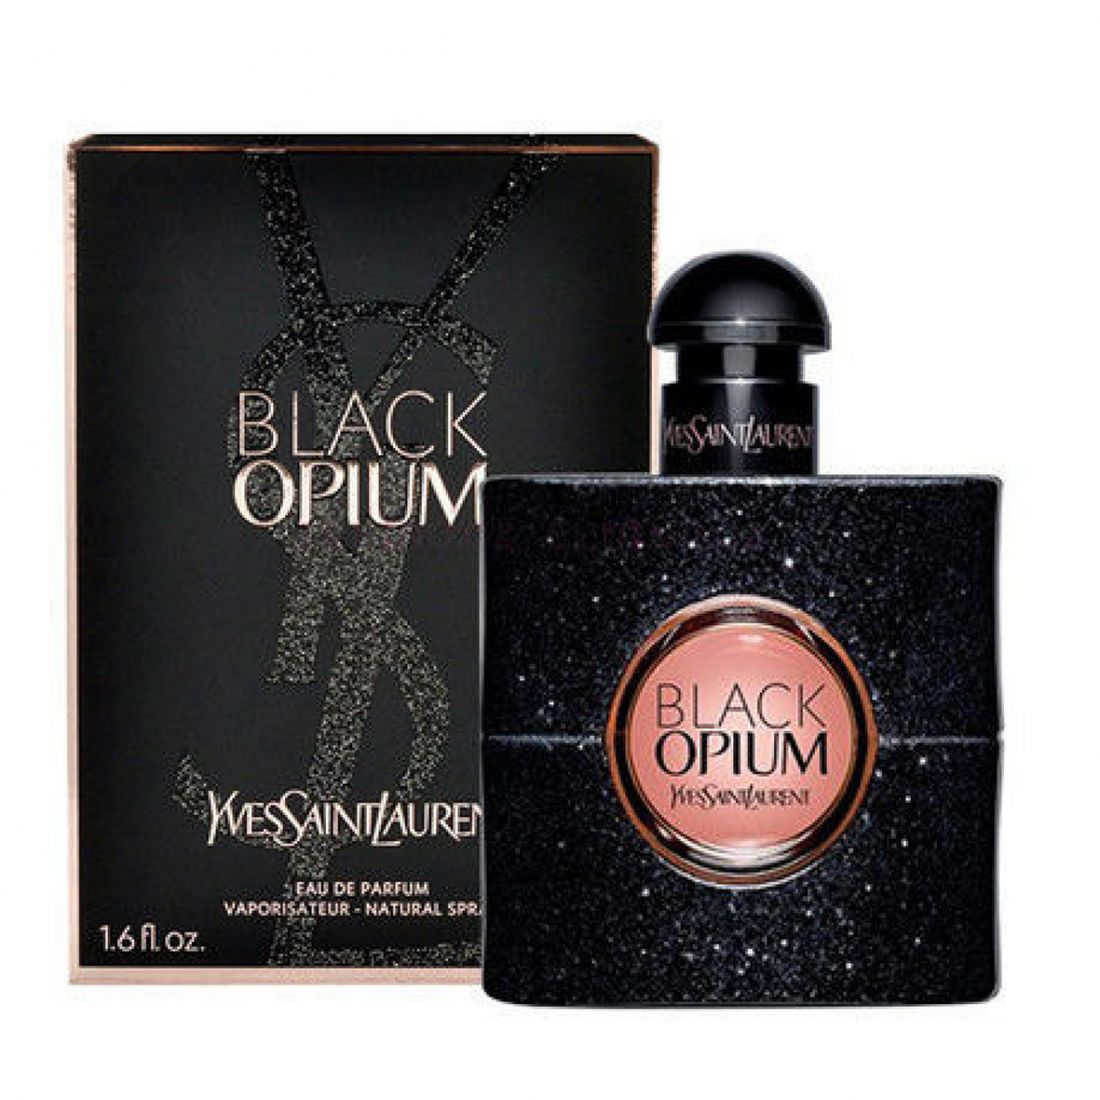 Yves Saint Laurent - Black Opium, 50 ml